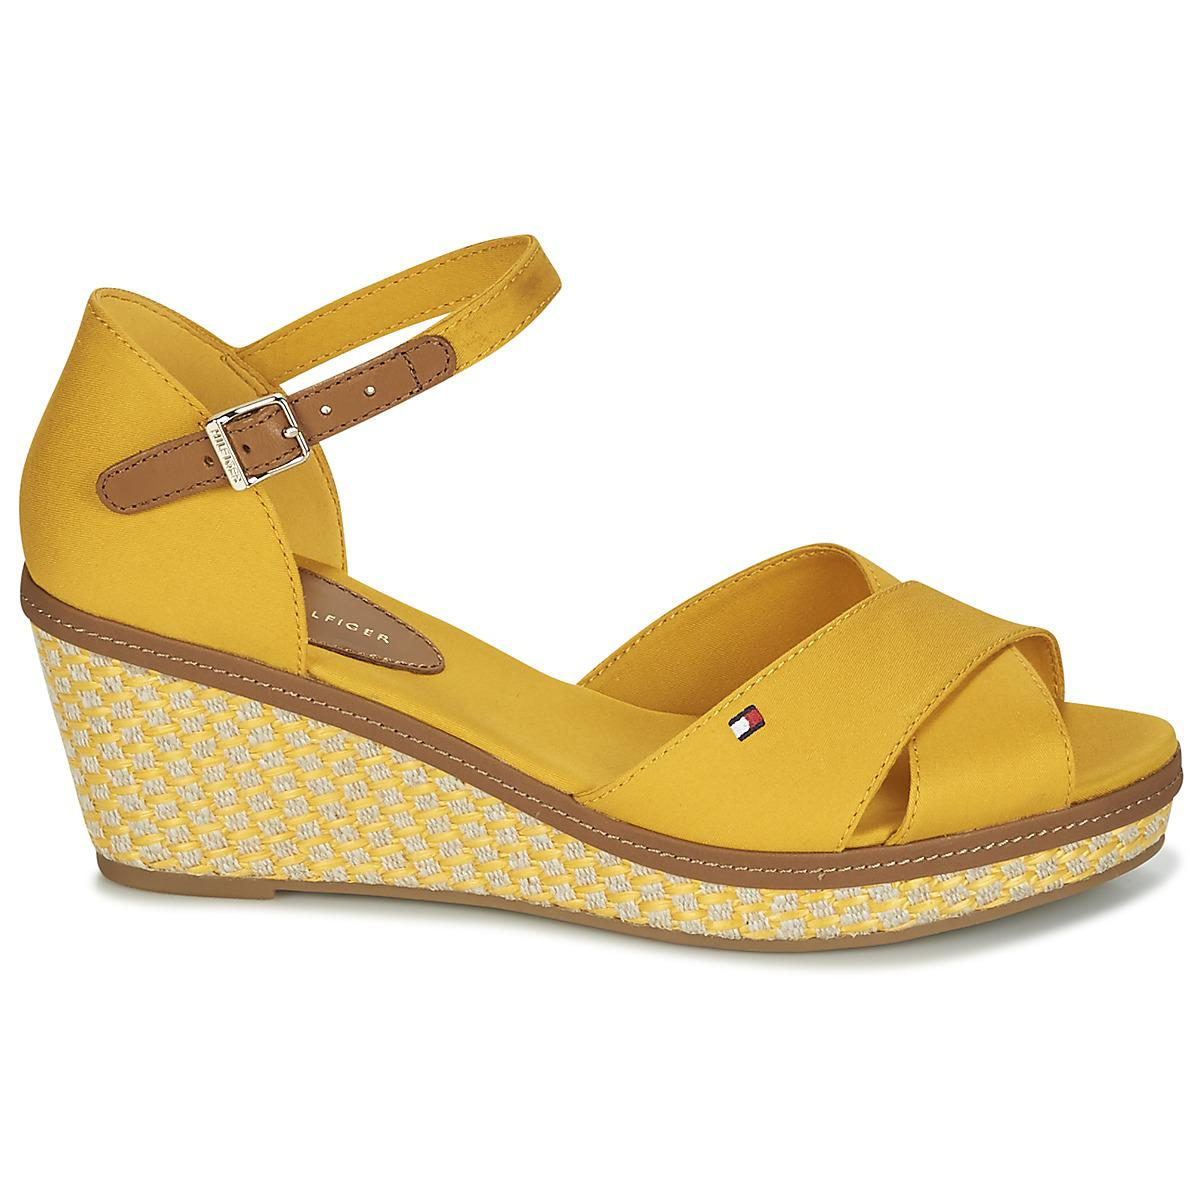 2afc224c1d02d8 Tommy Hilfiger Iconic Elba Sandal Basic Sandals in Yellow - Lyst